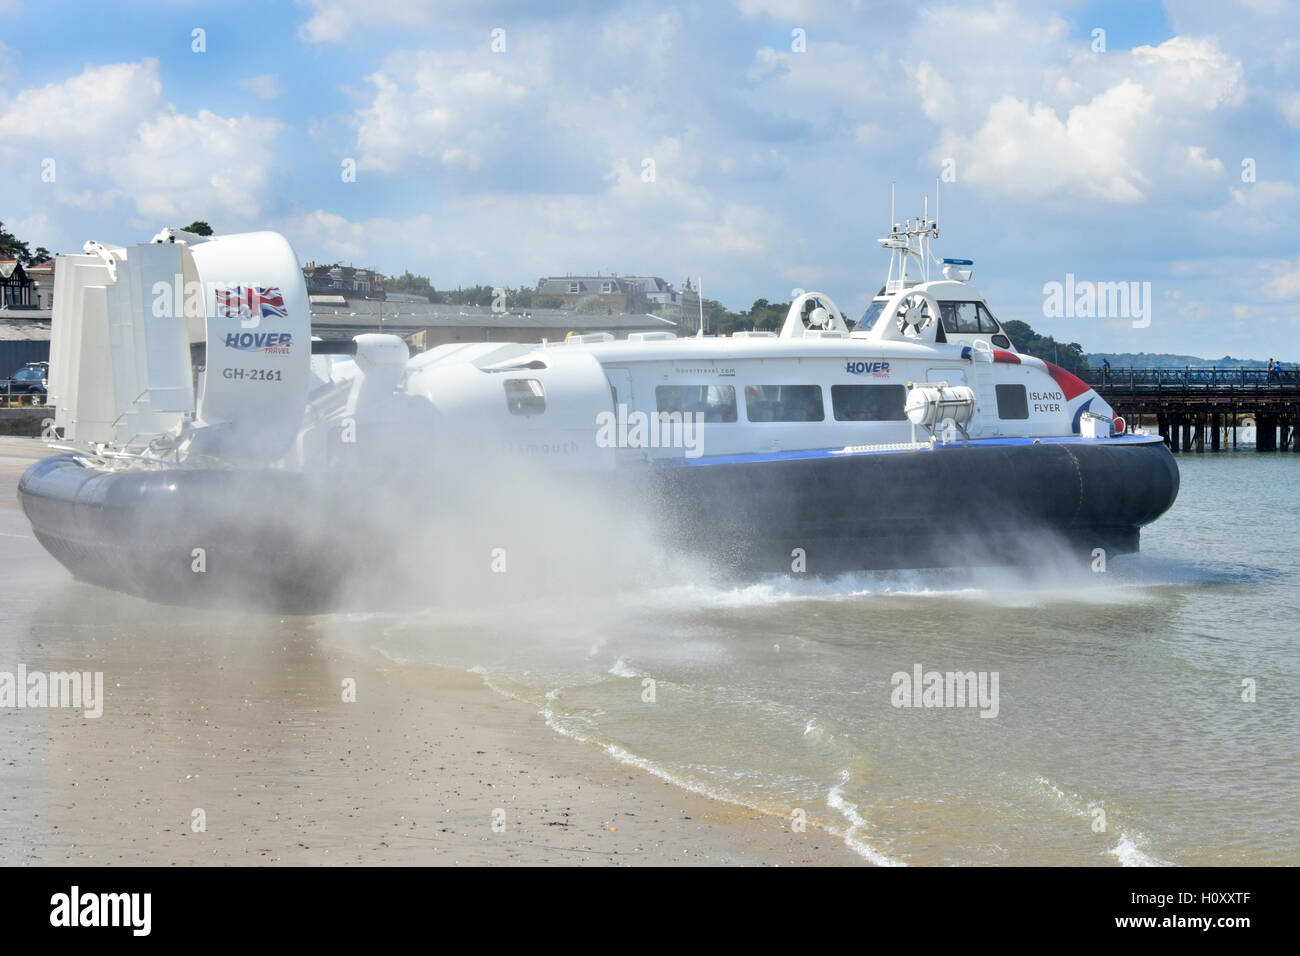 Passenger transport Hovercraft GH-2161Island Flyer departing Ryde Isle of Wight for flight across Solent water towards - Stock Image